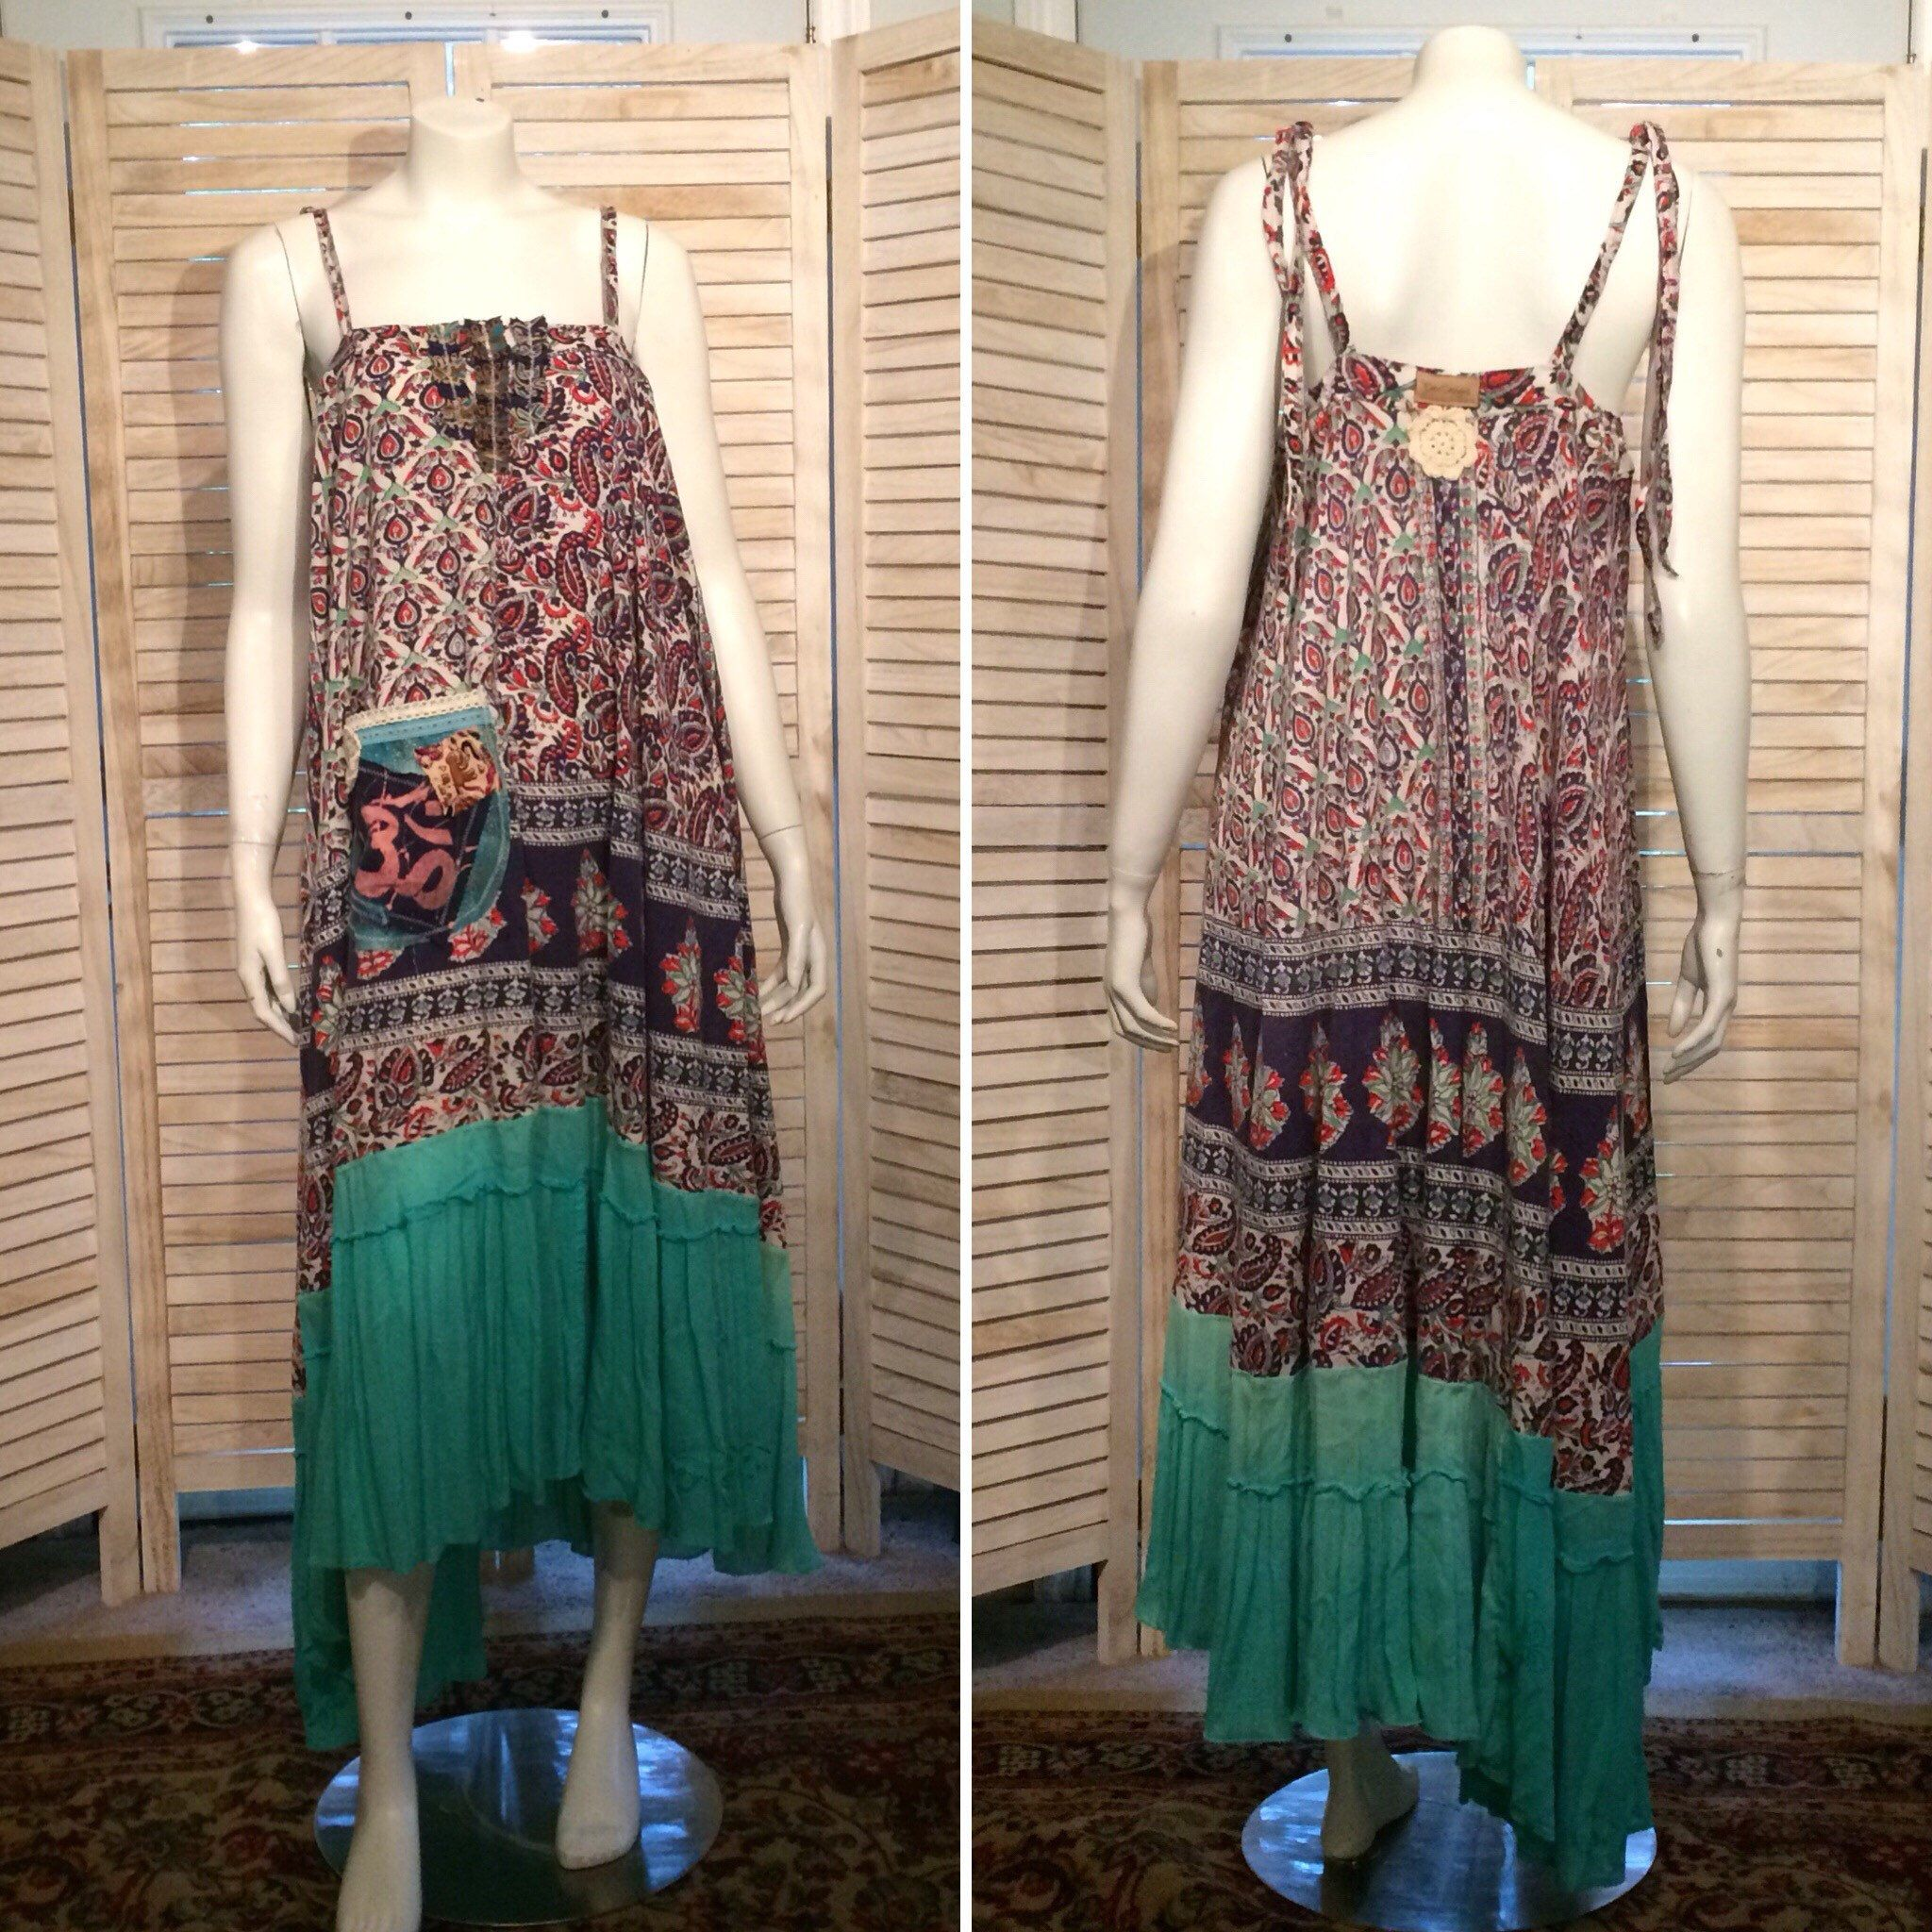 "Vintage Indian Dress Block Print Tiered Maxi Sundress Upcycled Clothing Boho Chic Earthy Eco One Size Fits Most Festival Upcycled Dress is part of Upcycle Clothes Boho -  OM Batik appliqué, scrappy patches, a mini crocheted doily, crocheted lace and embroidered ribbon trim   The silhouette is so simple and flattering; it looks superb on EVERYONE! A must have for summer… Measurements are as follows Top Band width 3846"" around Bust 29"" across laying flat  Length 4448"" from the top of centerfront on down the hem is asymmetrical for boho chic flare Please convo me with ANY questions! I LOVE custom orders too, so please don't hesitate to present me with your ideas  Thanks so much for looking… ~~ Peace & LIGHT! ~~ Chrisoula"